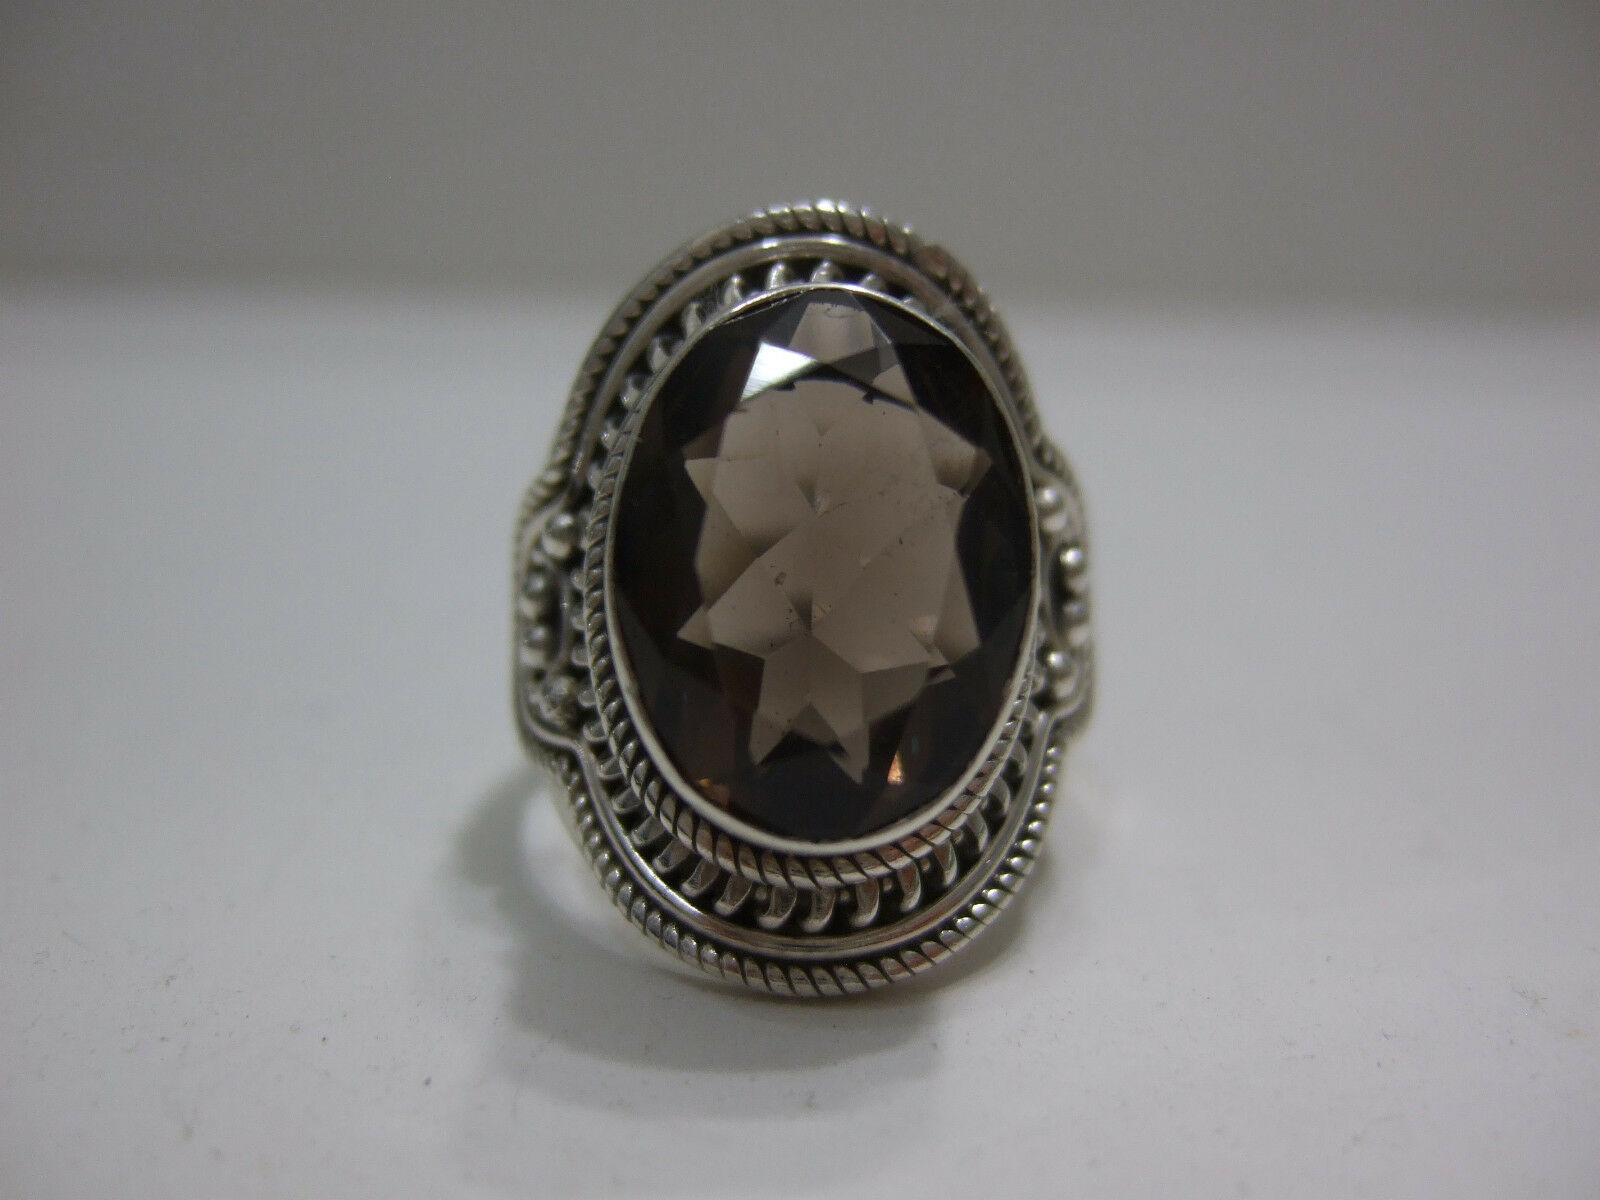 FACETED SMOKEY QUARTZ & SOLID 925 STERLING RING  sz9.25 - BOHO BEAUTIFUL